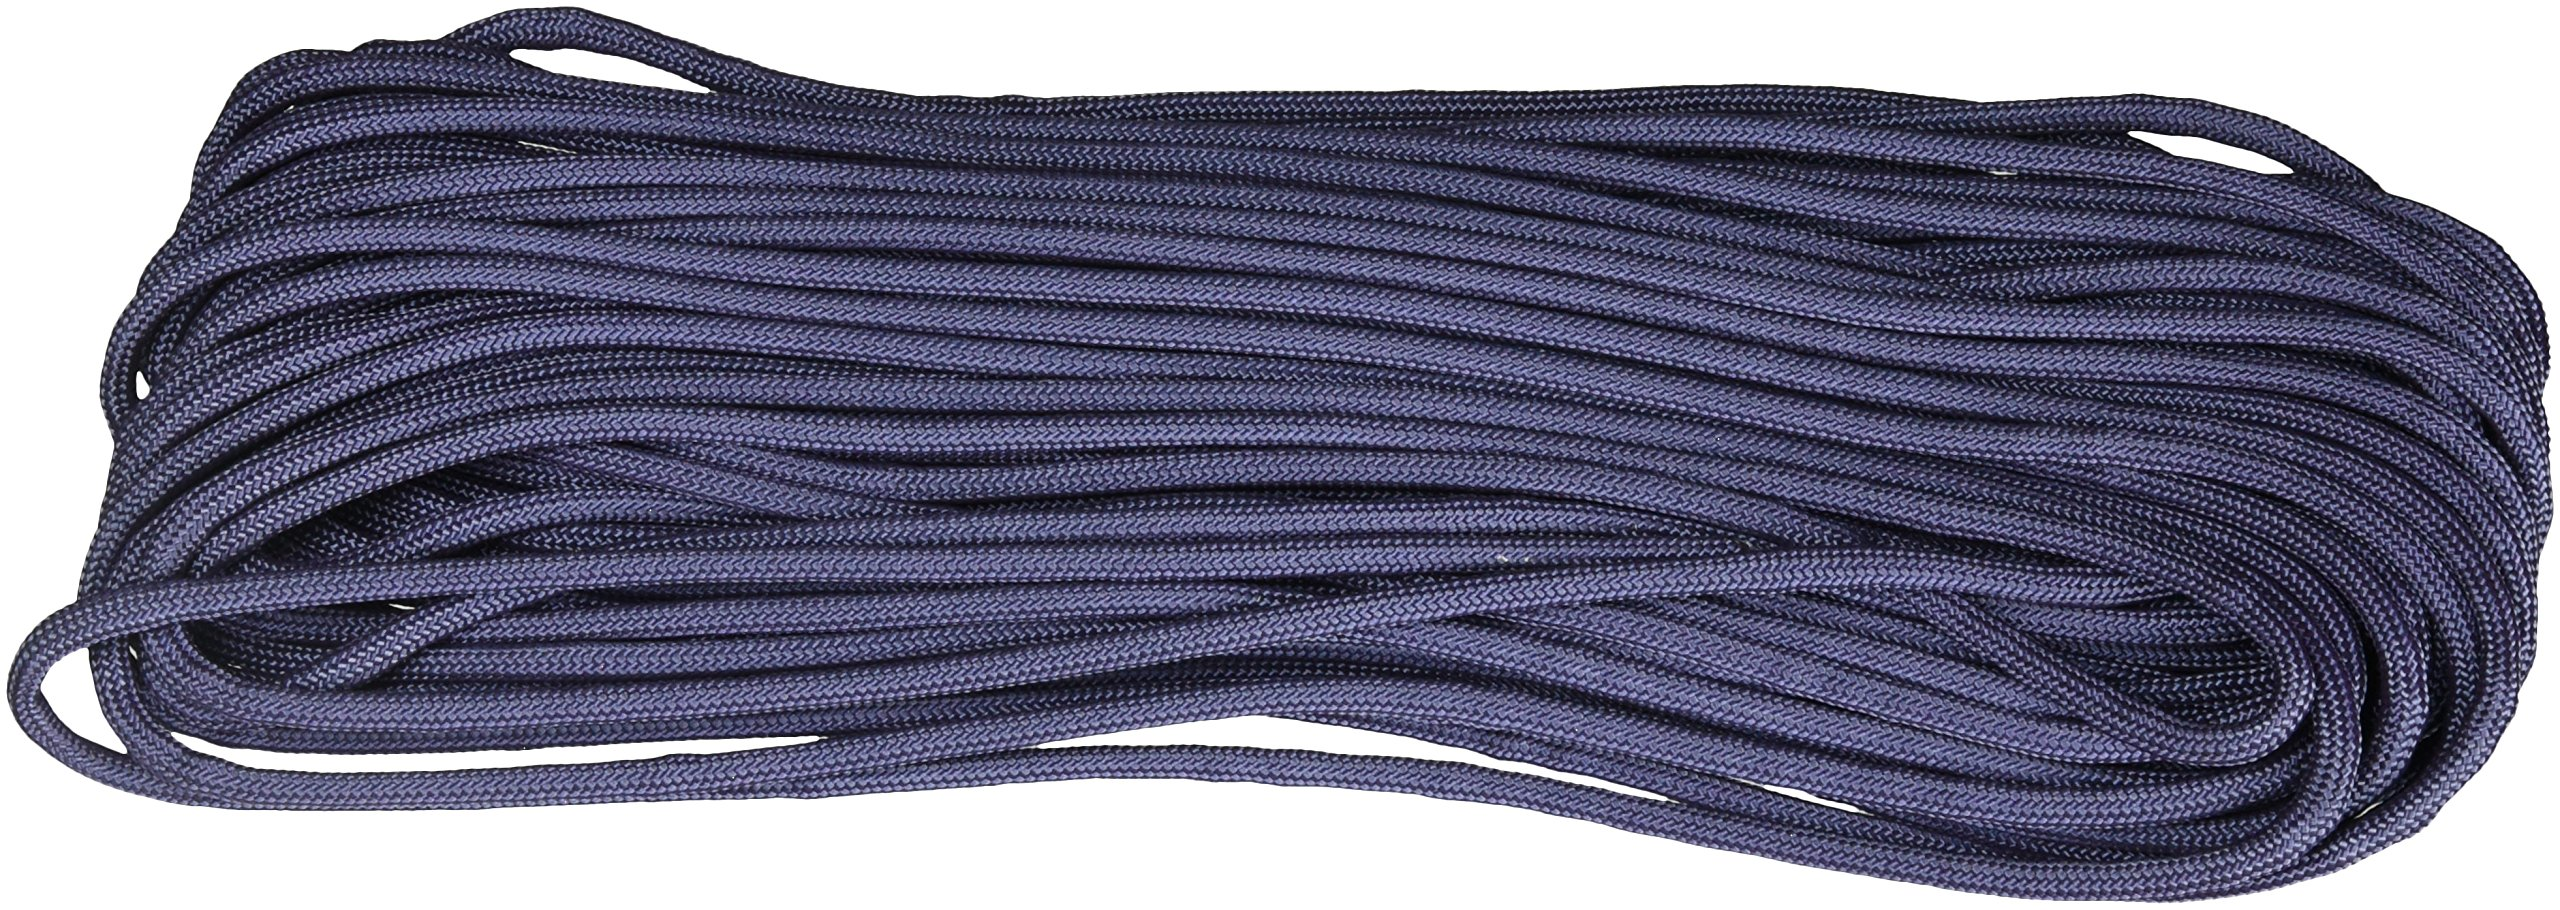 Liberty Mountain Paracord, Navy, 50-Feet by Liberty Mountain (Image #1)